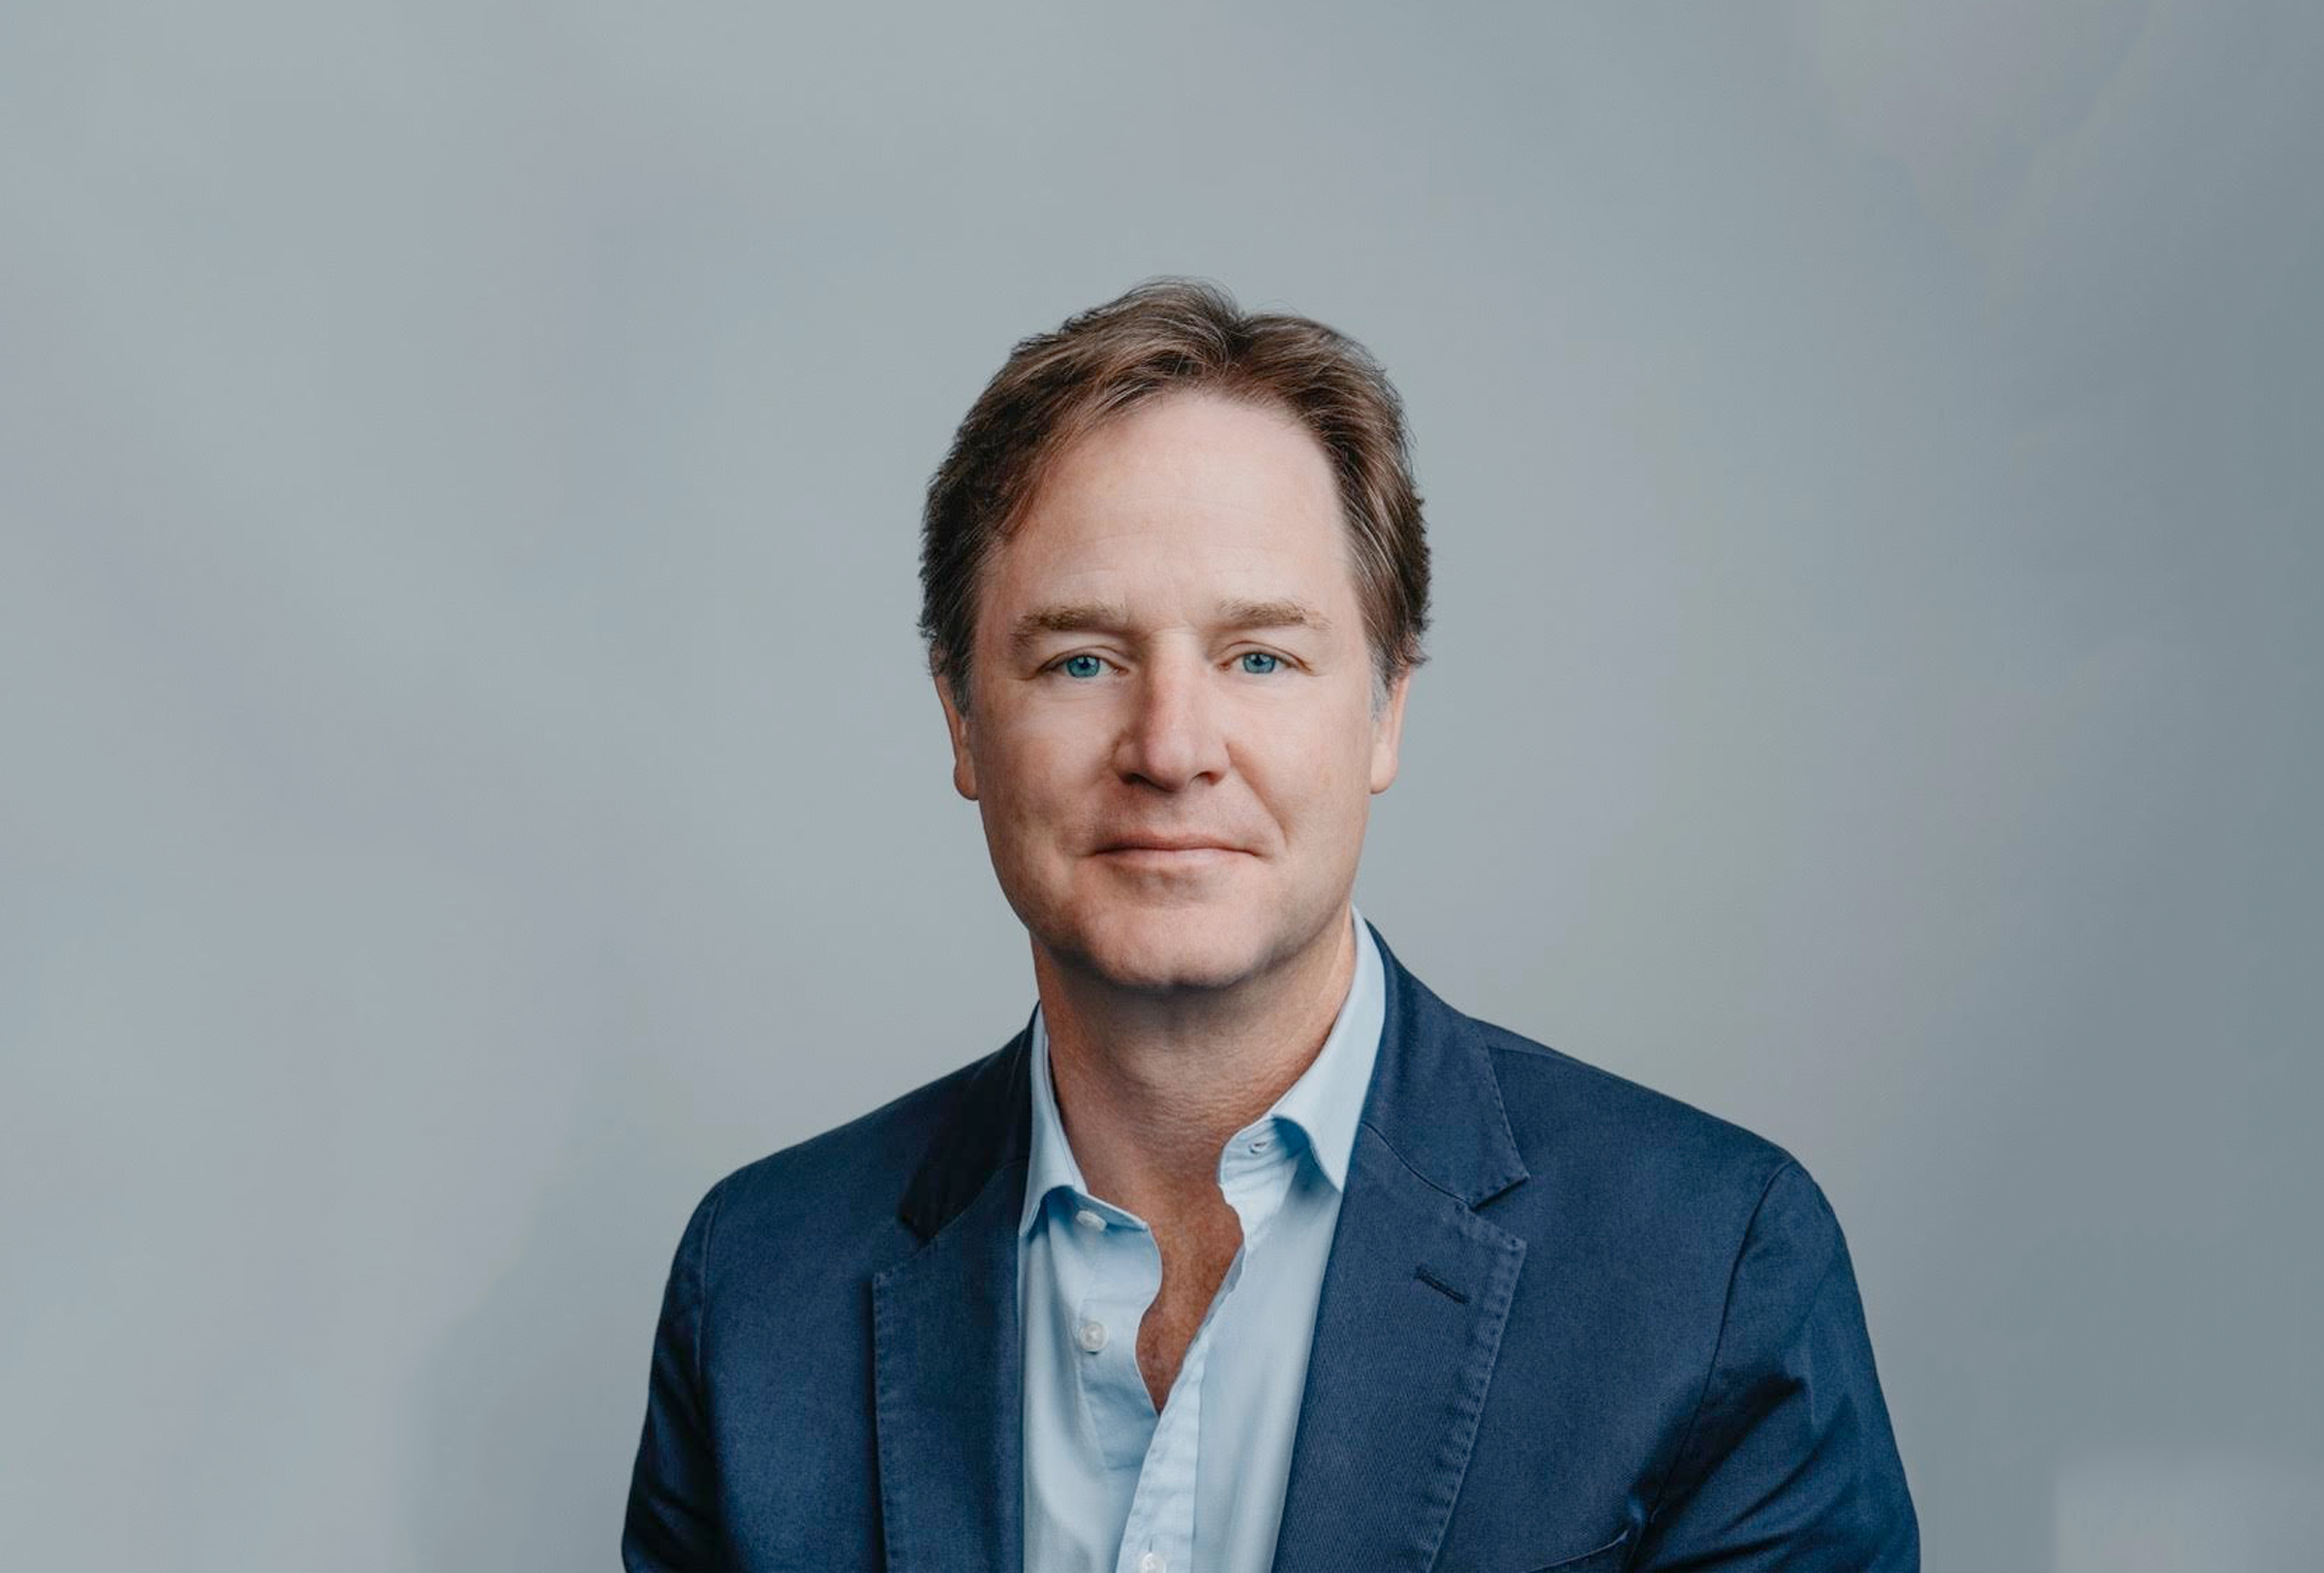 Sir Nick Clegg talks at The Virtual Summit 4th of June